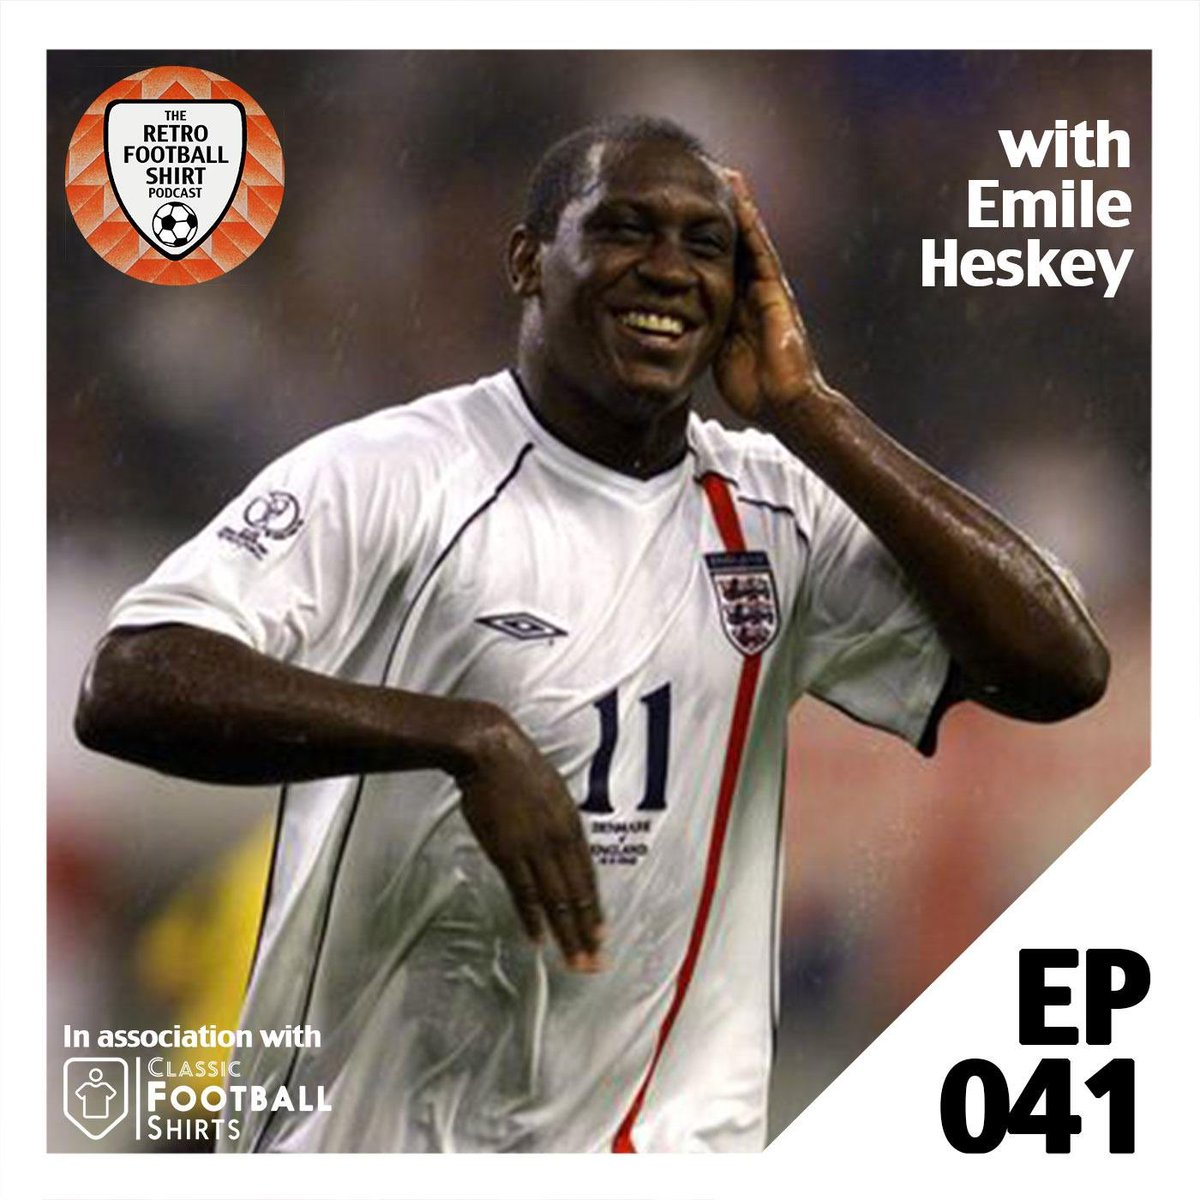 🚨NEW EPISODE ALERT🚨 In association with @classicshirts Hosted by @IAmAlexManzi & @mruche ⚽️ Uche & Alex are joined by @EmileHeskeyUK 👏🏽 🎧 Emile talks about 'THAT' goal celebration 👕 @LFC & @LCFC classic kits 🙌🏽 LISTEN 👉🏽 linktr.ee/retrofootballs…